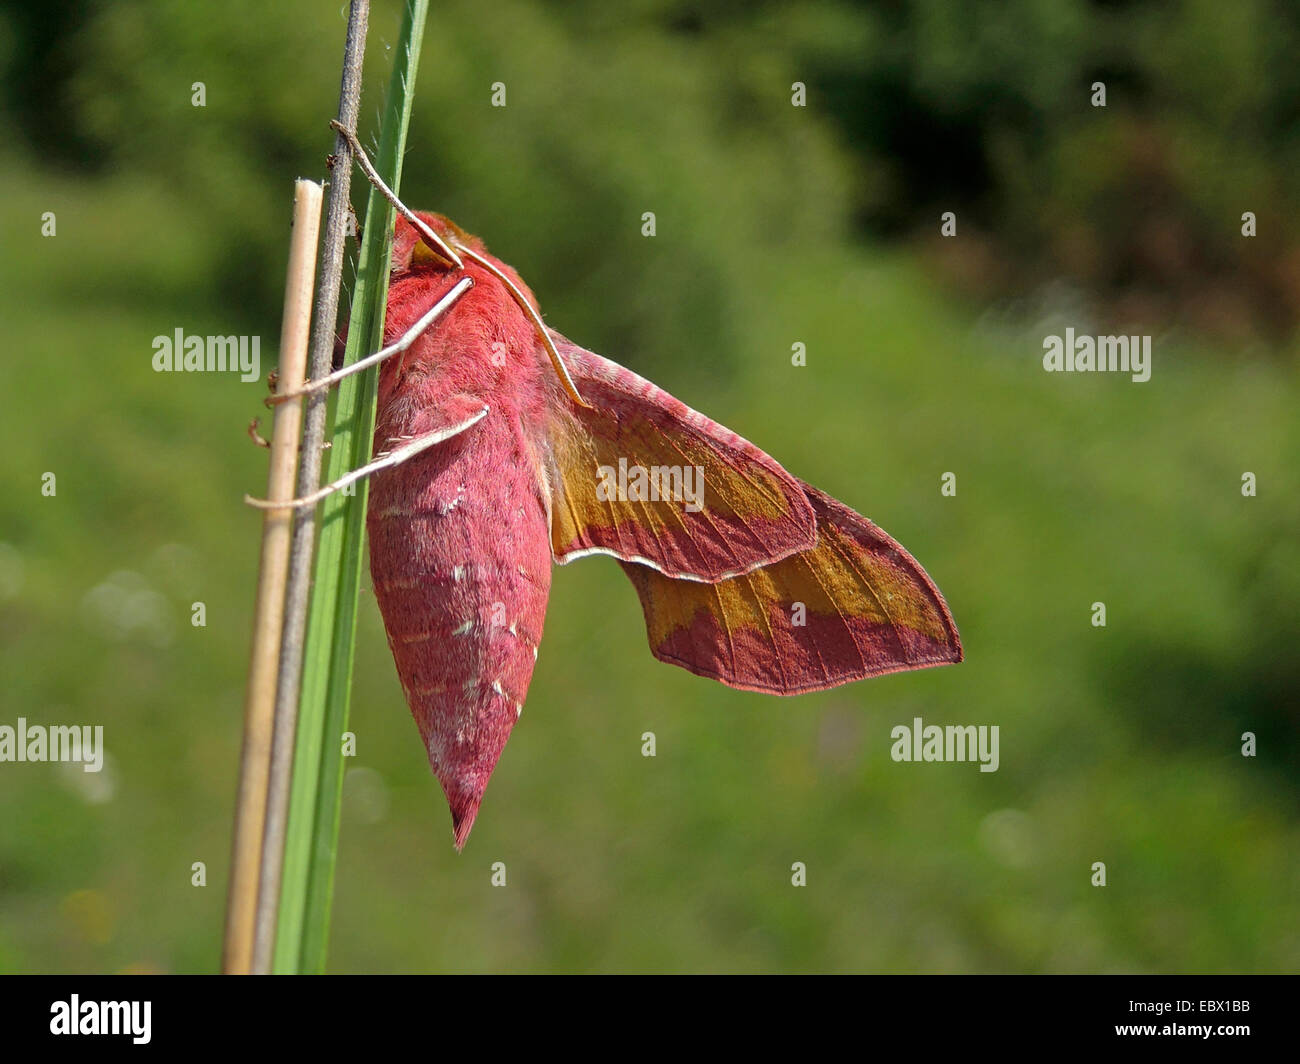 small elephant hawkmoth (Deilephila porcellus), sitting at a glass blade, Germany, Baden-Wuerttemberg - Stock Image